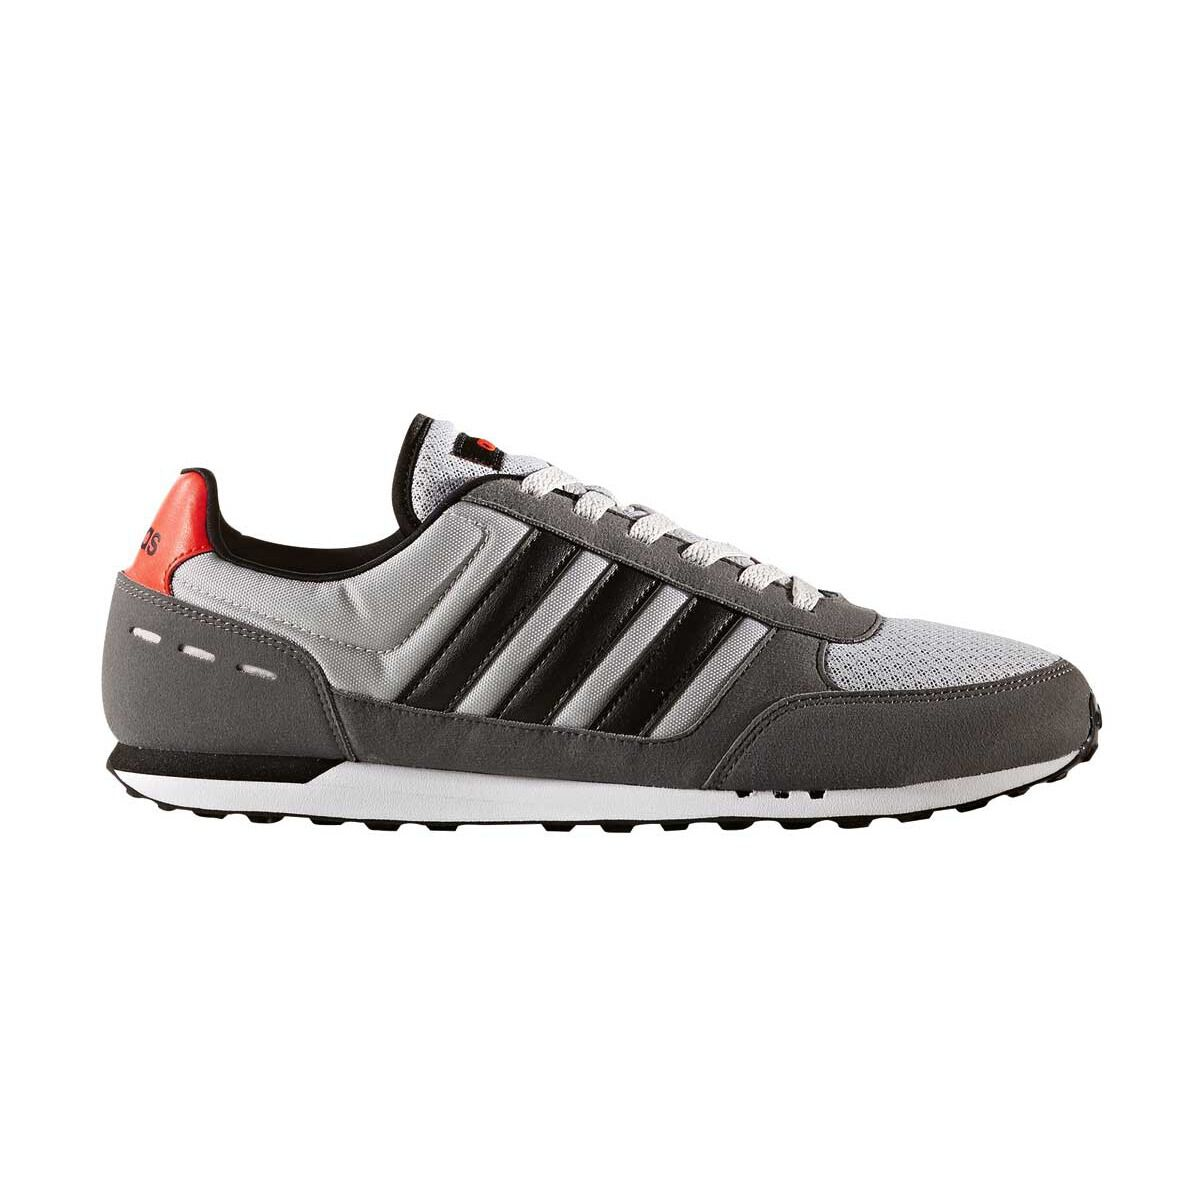 hot sale online 14789 94e94 ... where to buy adidas neo city racer mens casual shoes grey black us 9  grey black